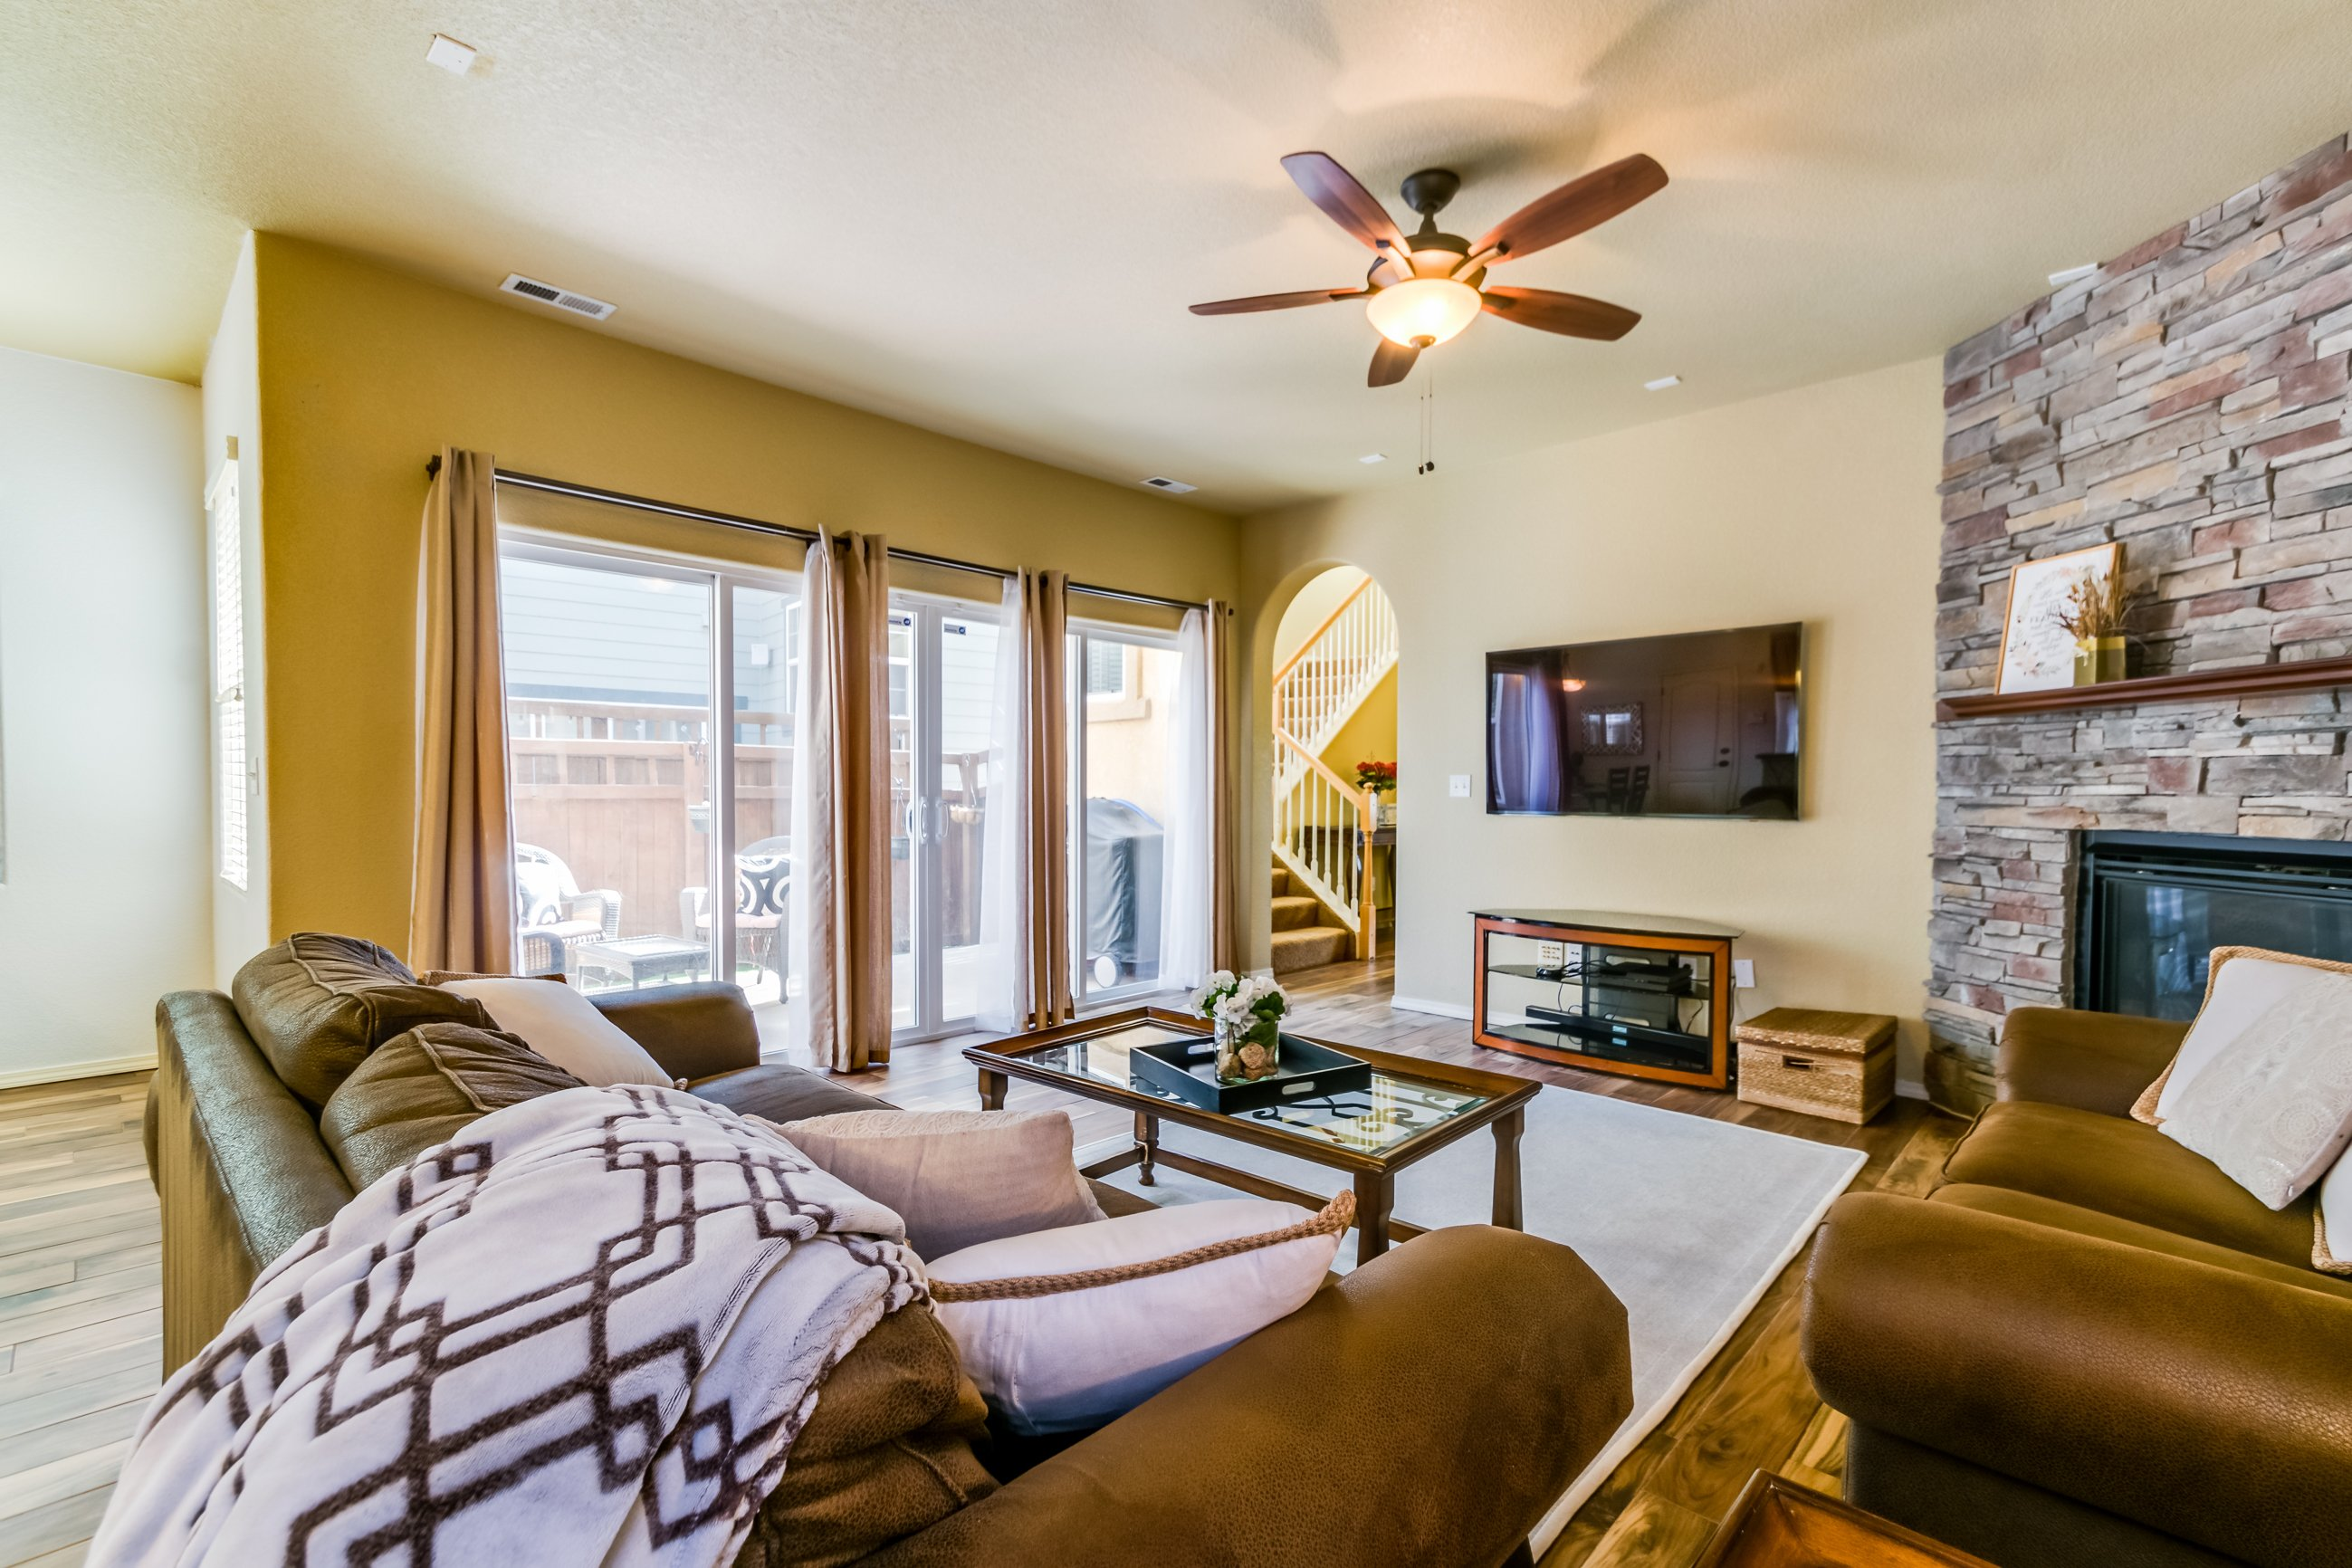 Gold Hill Mesa condo for sale, picture of living room